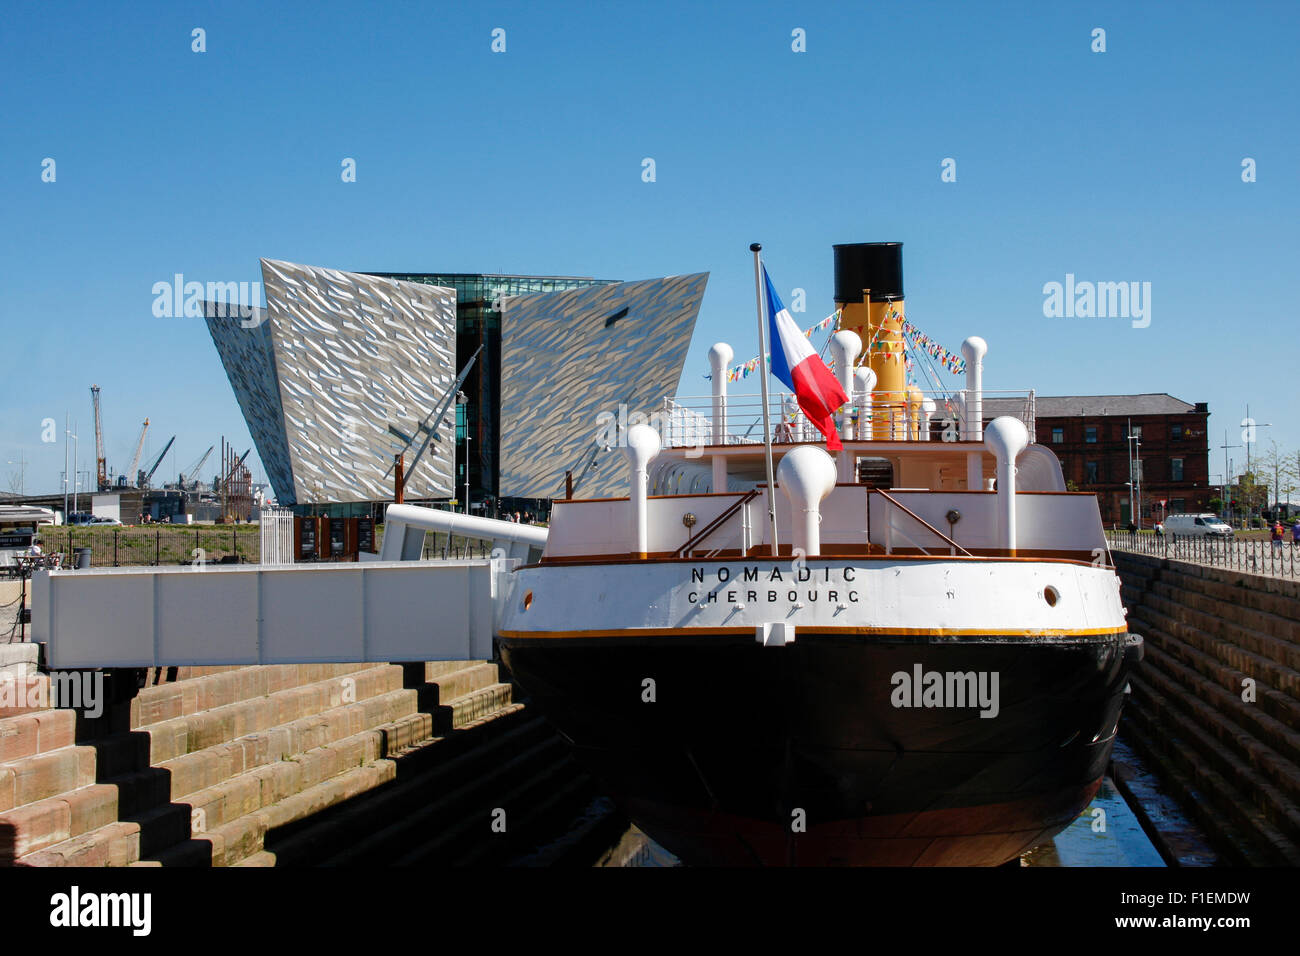 SS Nomadic, the last remaining ship of the White Star Line, in dry dock at Titanic Belfast Centre, Northern Ireland - Stock Image